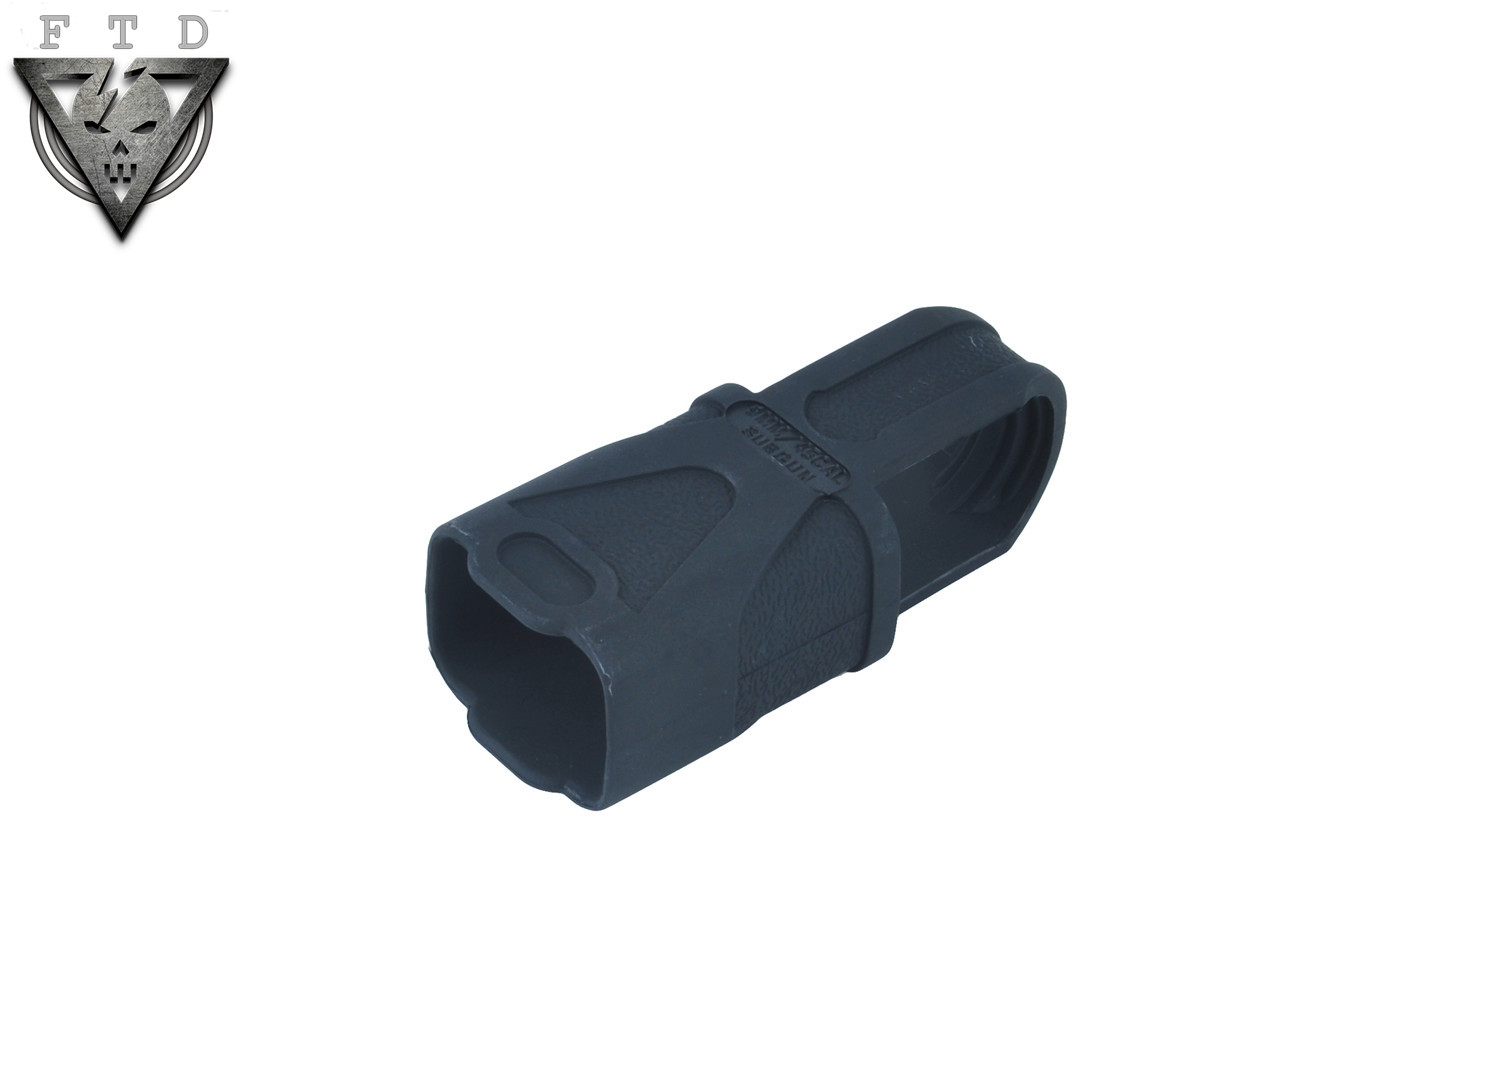 FTD 9MM NATO Cage Fast Mag Rubber Loops For MP5 Magazine Assist Hunting Accessory